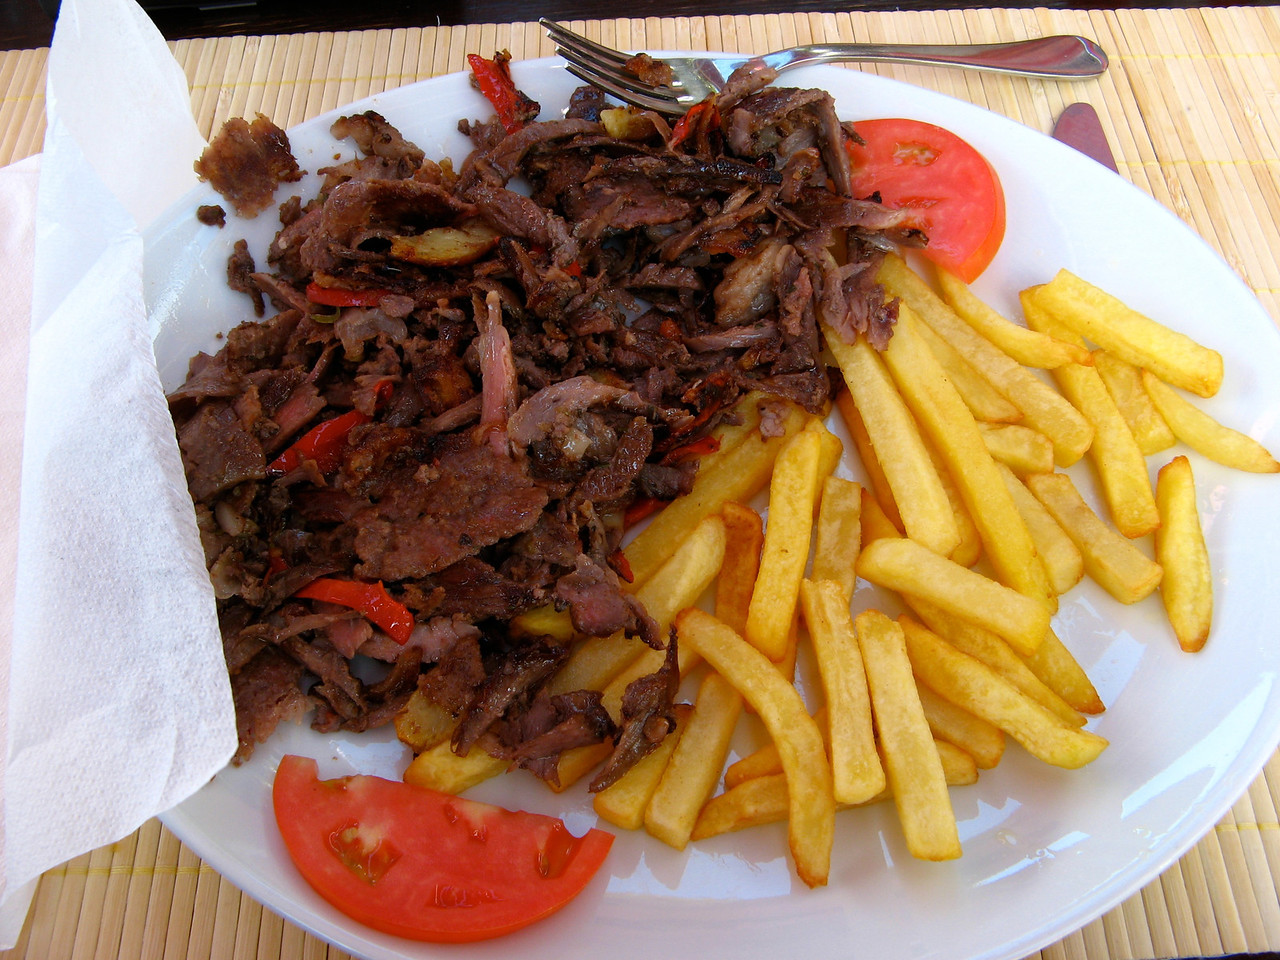 And Le Roka had one of the best meals of the trip...doner kebabs...